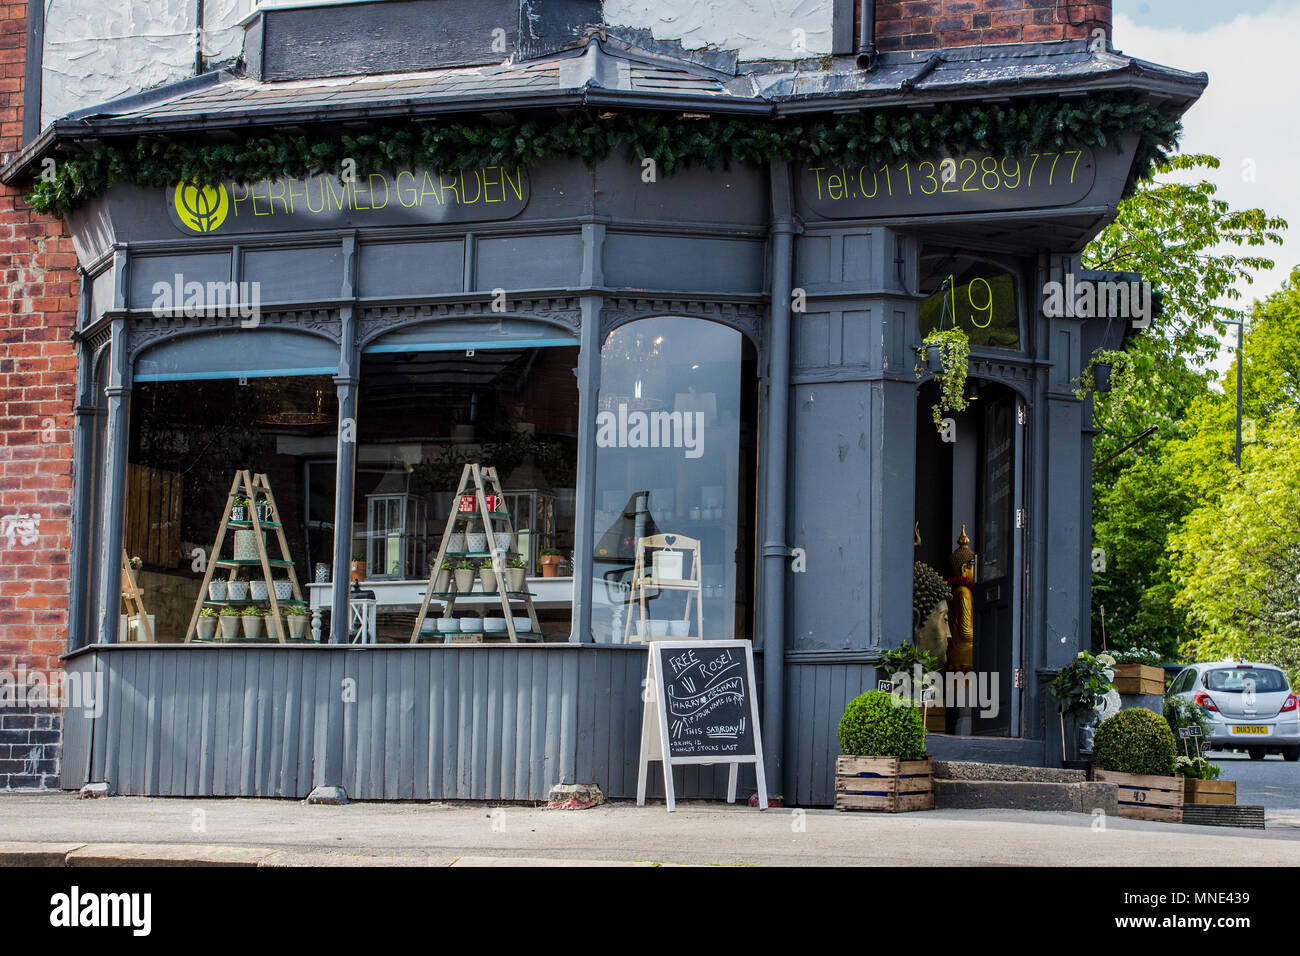 Leeds, UK - 16 Mary 2018.  The Perfumed Garden forist in Chapel Allerton are offering free roses this Saturday to celebrate the royal wedding. The only catch is that your name needs to be either Harry or Meghan to claim one. Credit: James Copeland/Alamy Live News - Stock Image